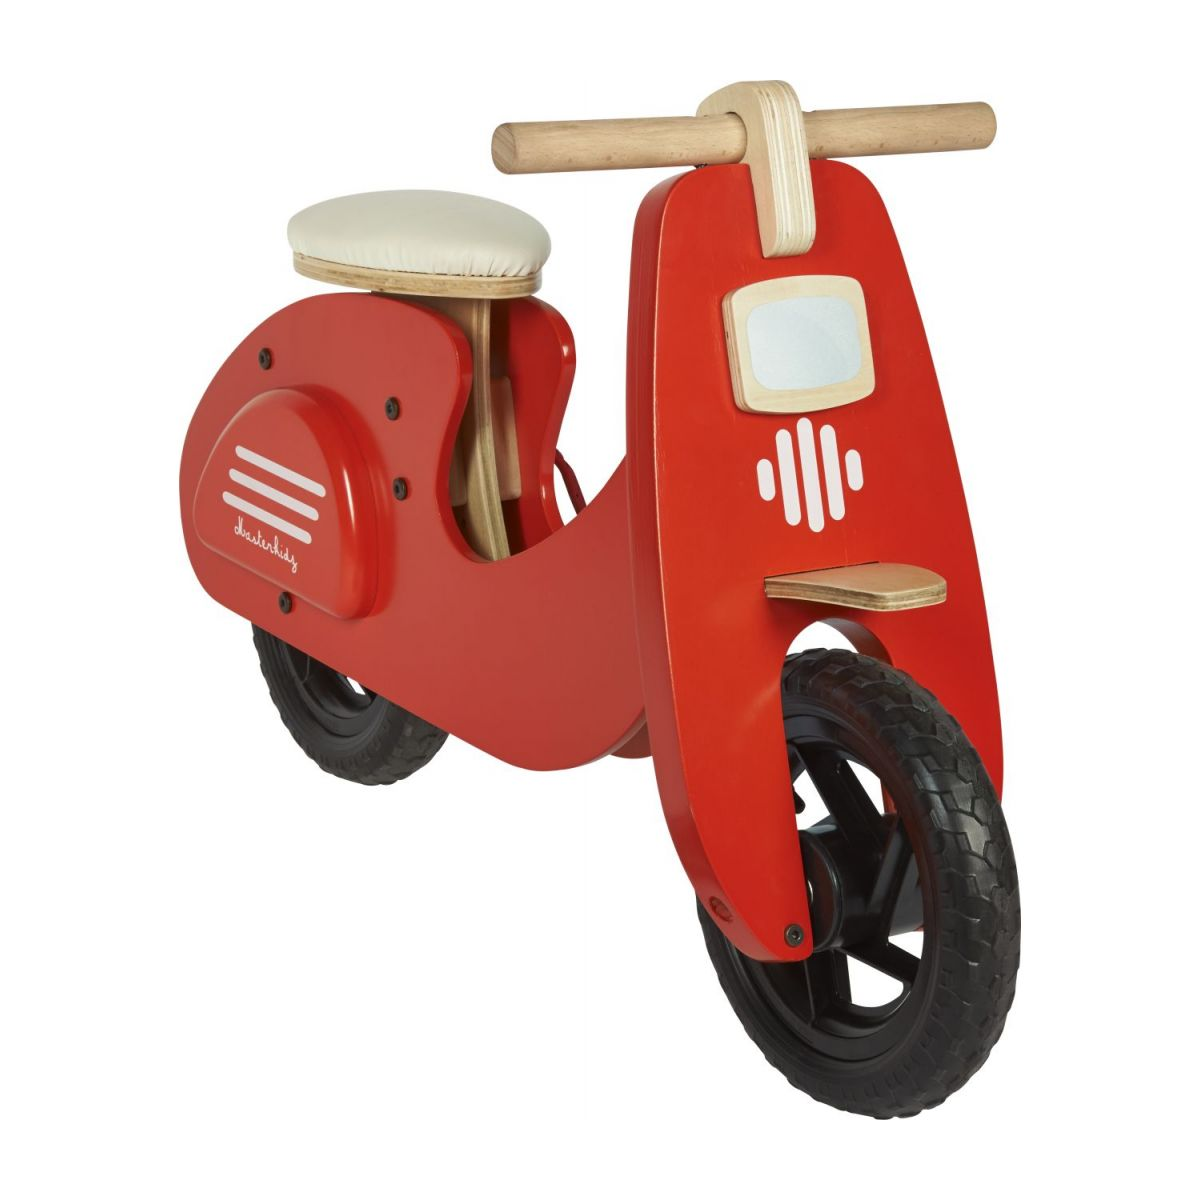 Wooden scooter n°1